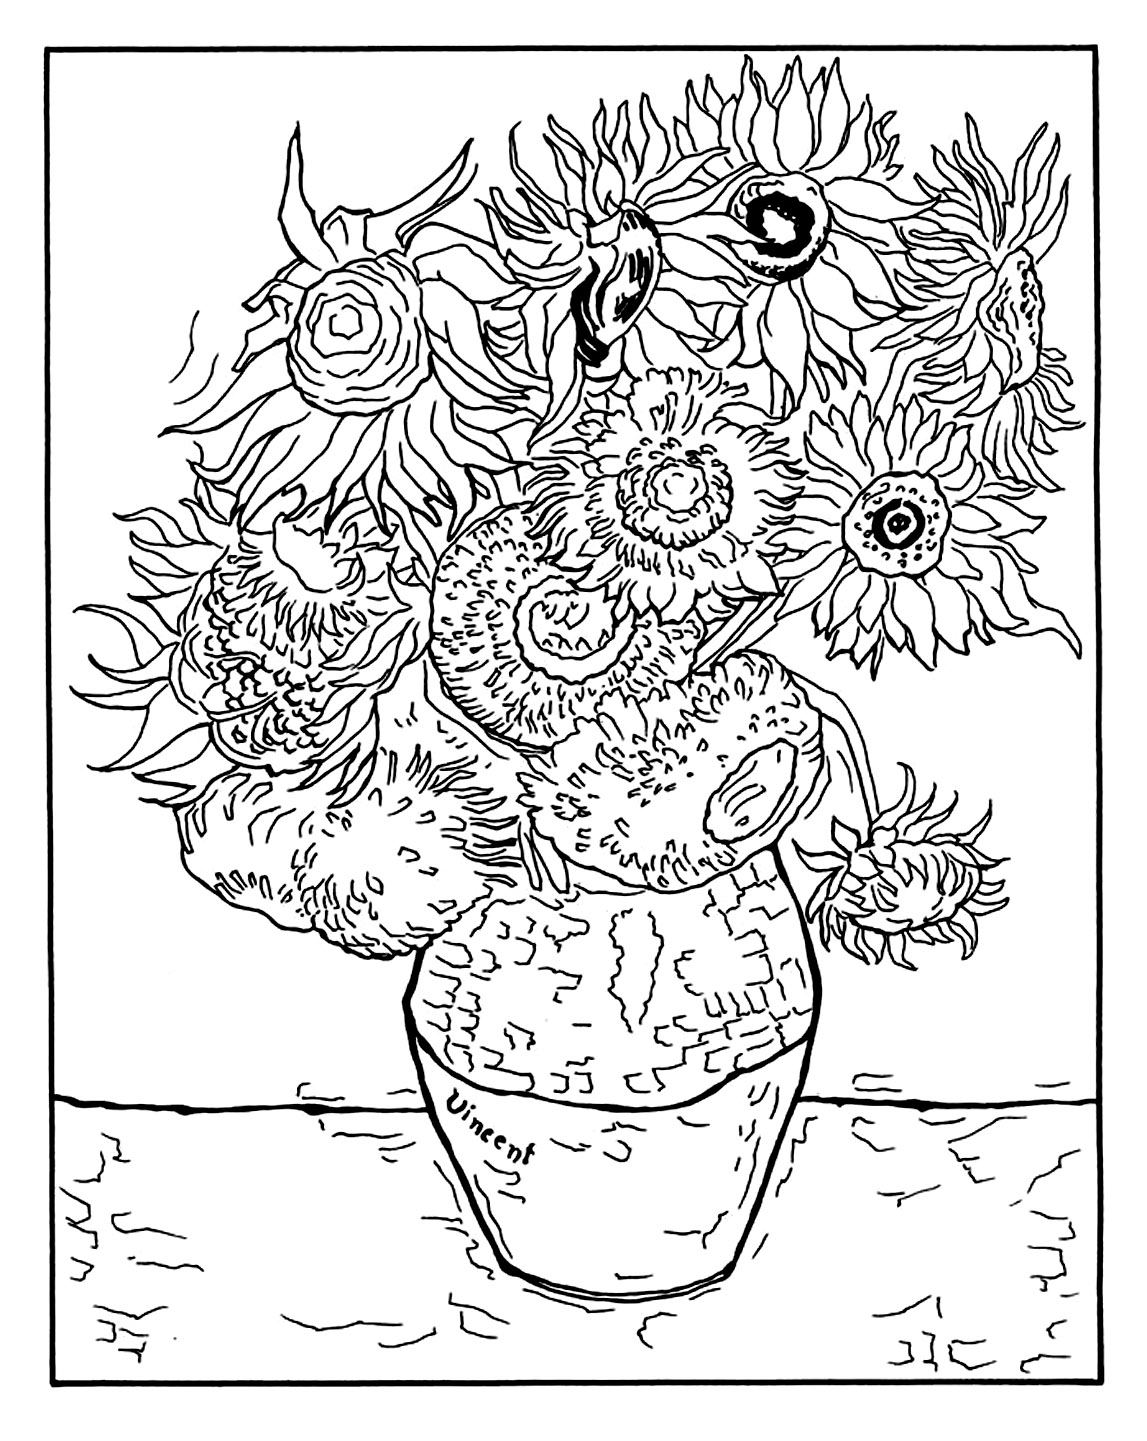 van gogh sunflowers coloring page sunflower drawing template at getdrawings free download gogh van sunflowers page coloring